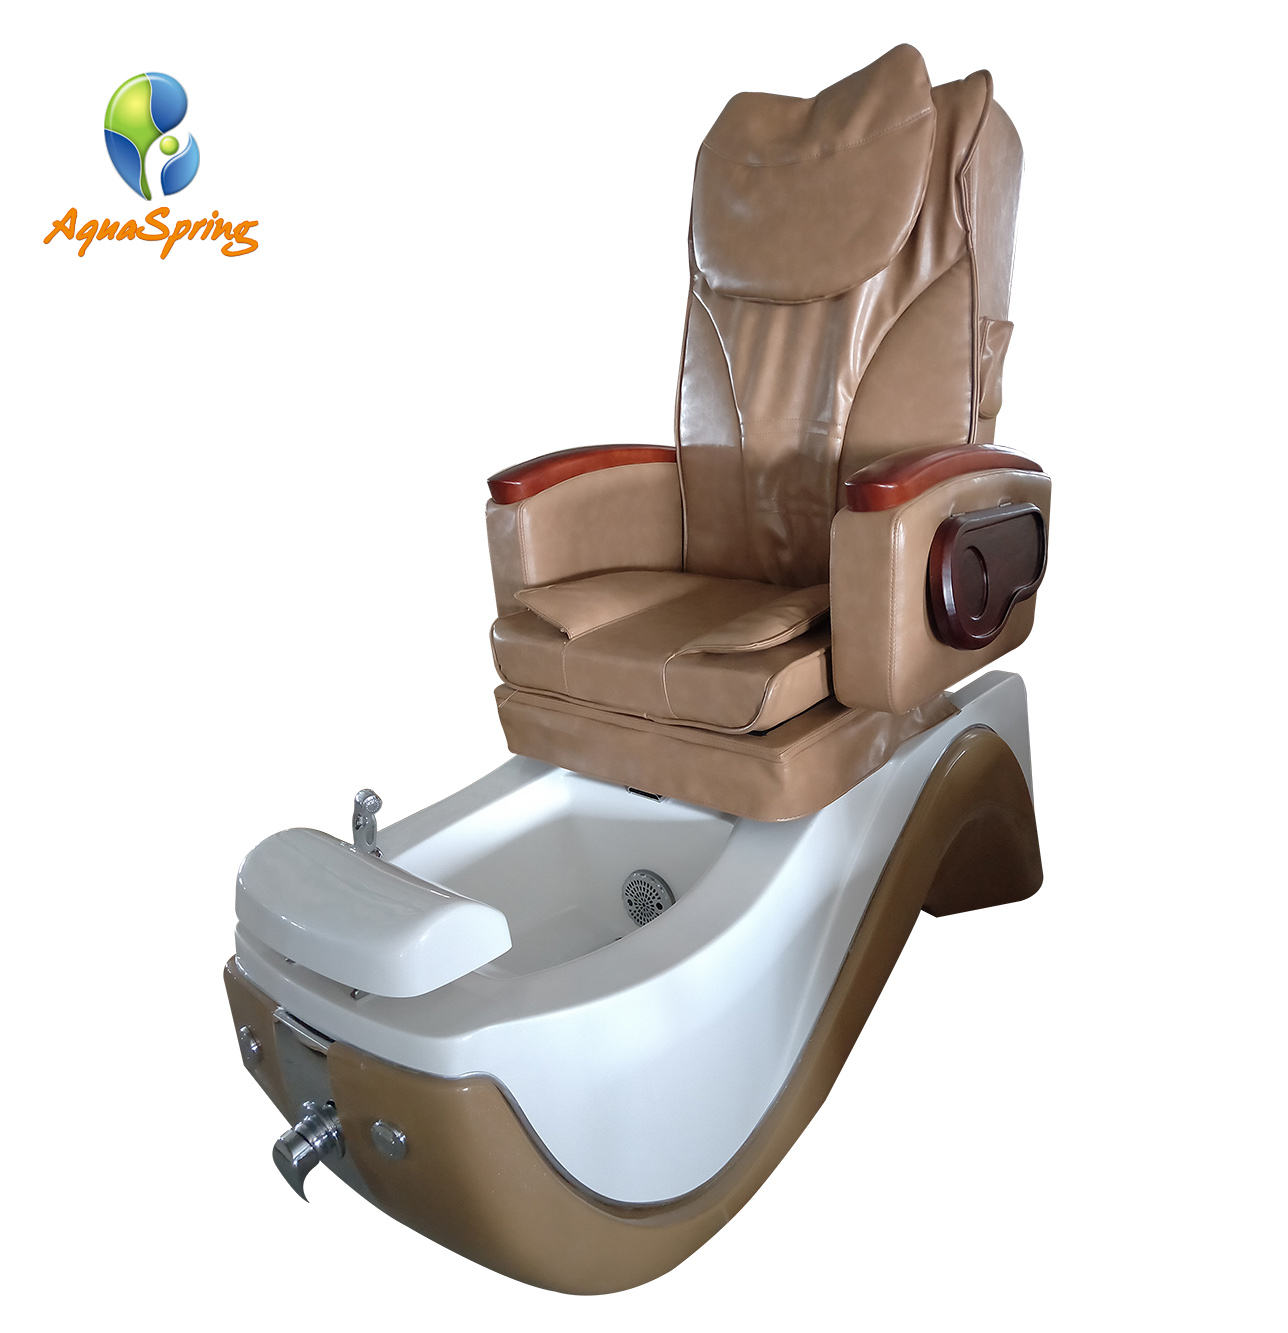 luxury pedicure massage spa chair remote control Color can be customized nails pedicure chair